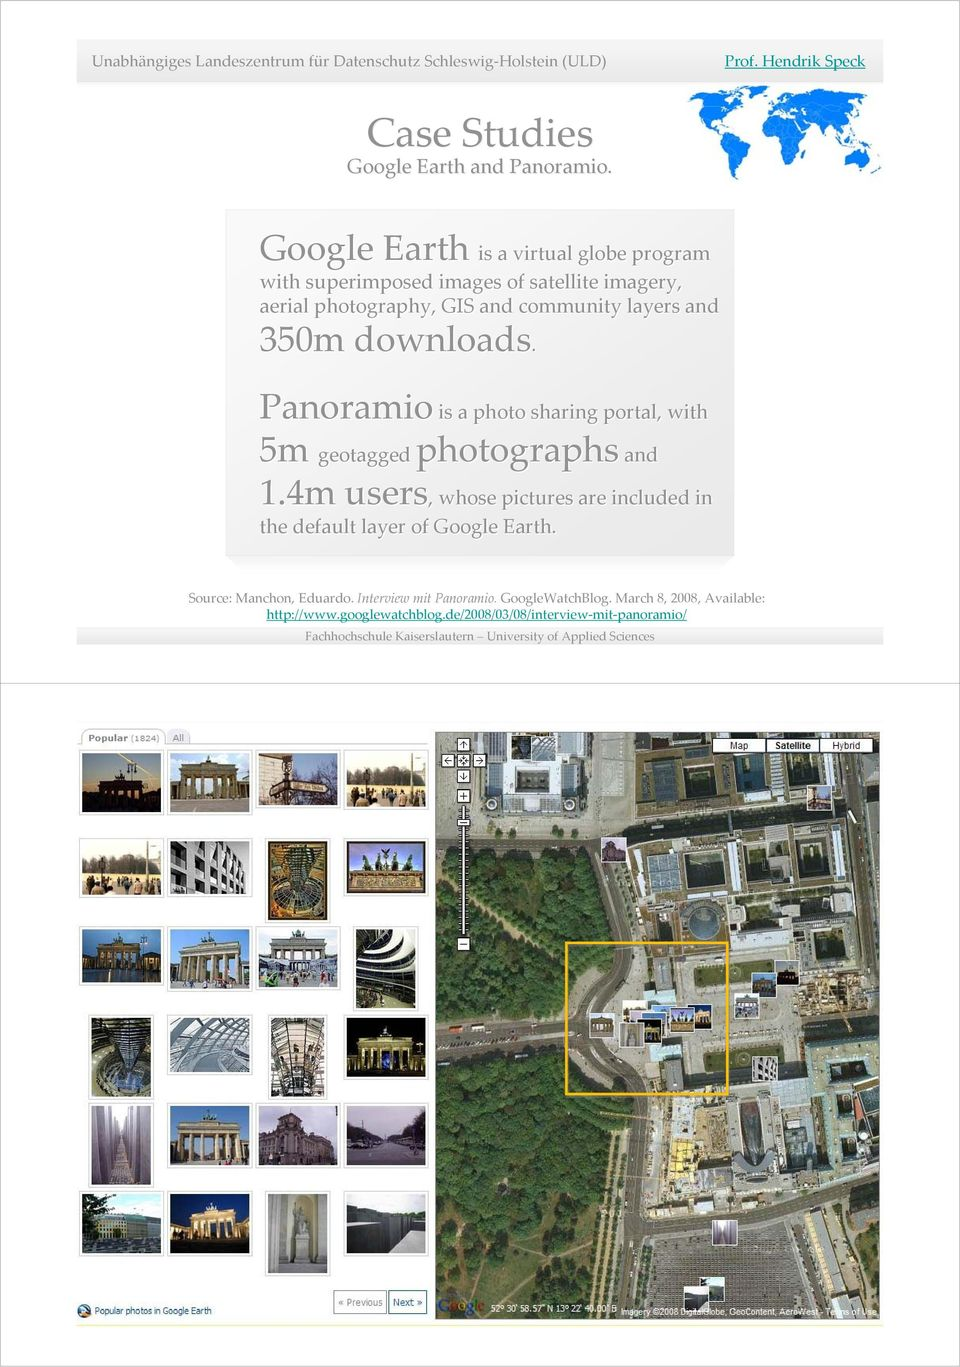 layers and 350m downloads. Panoramio is a photo sharing portal, with 5m geotagged photographs and 1.